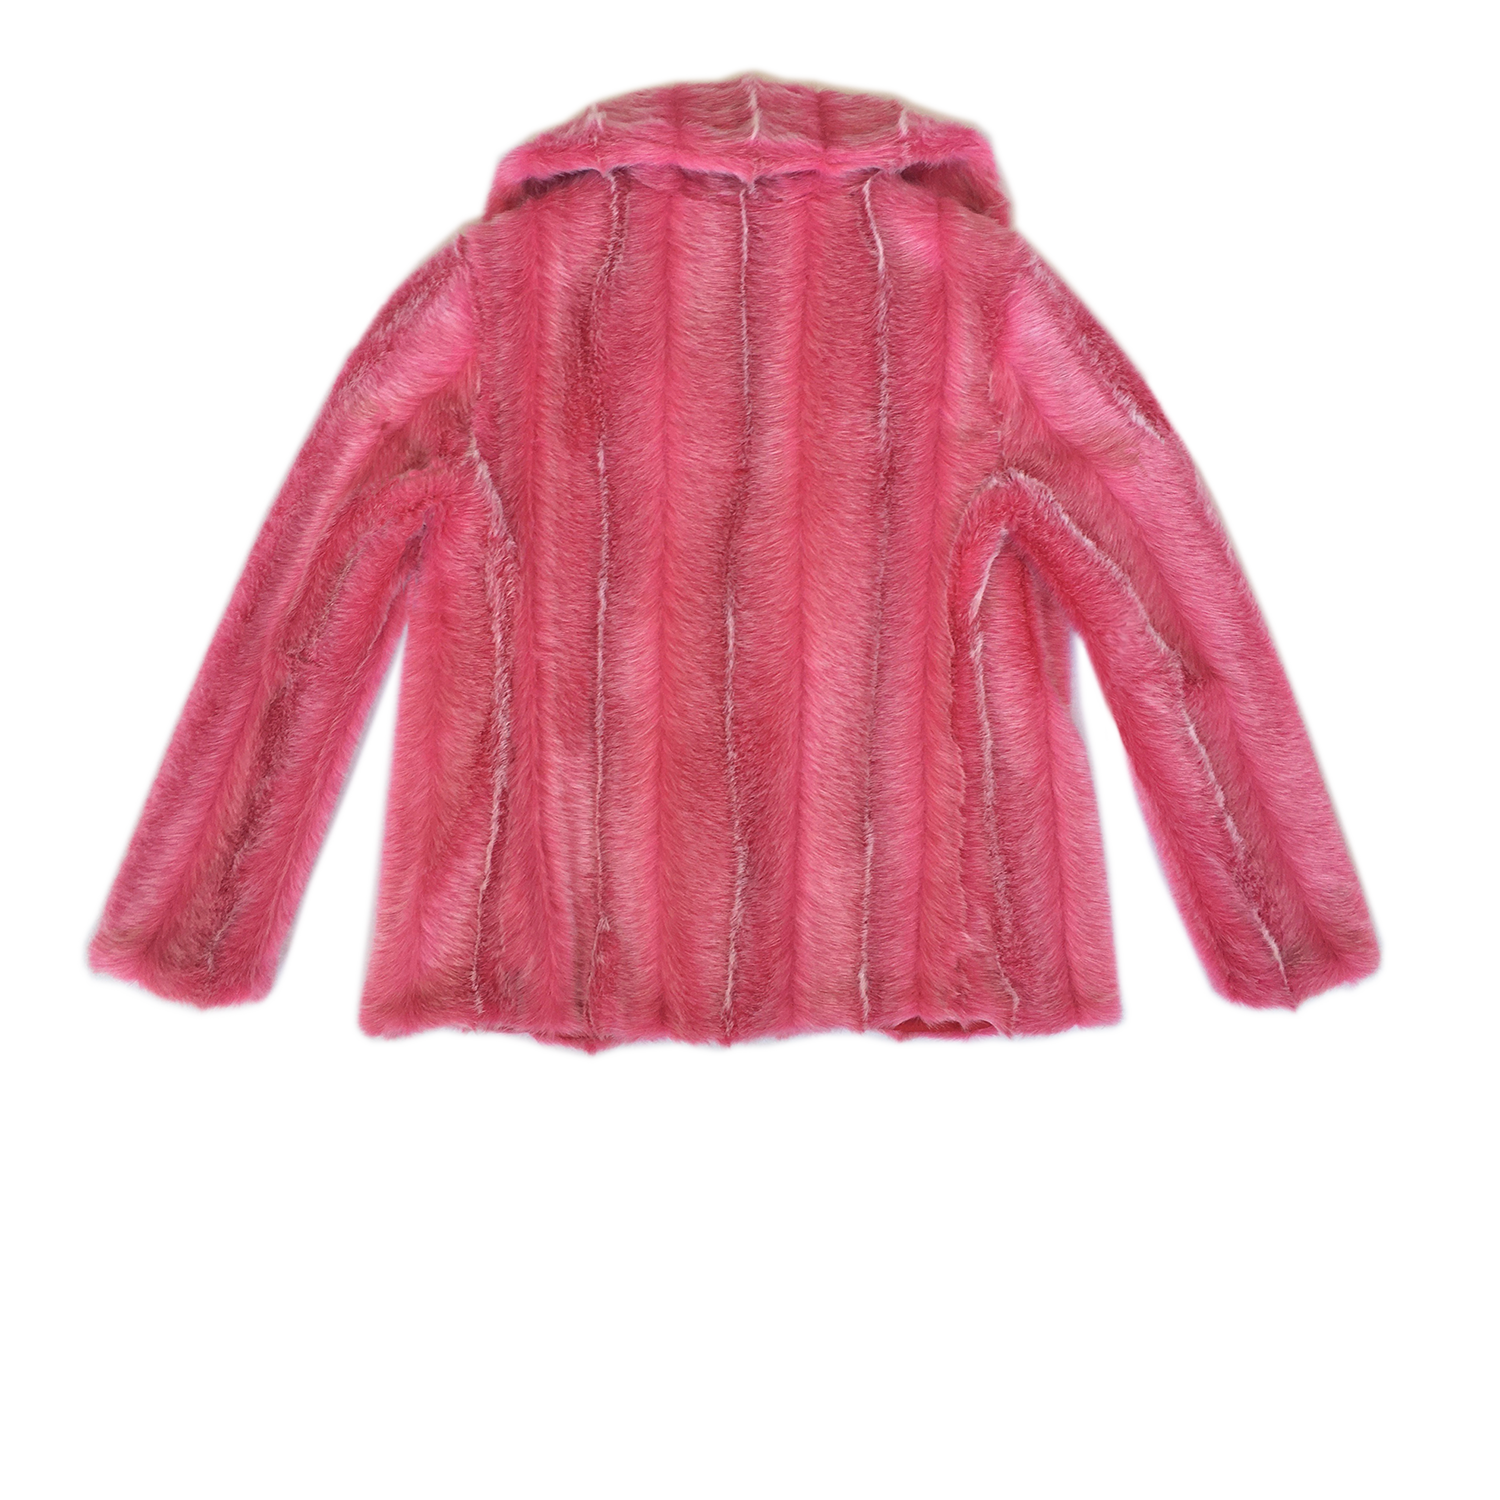 products/pinkjacket_back.png